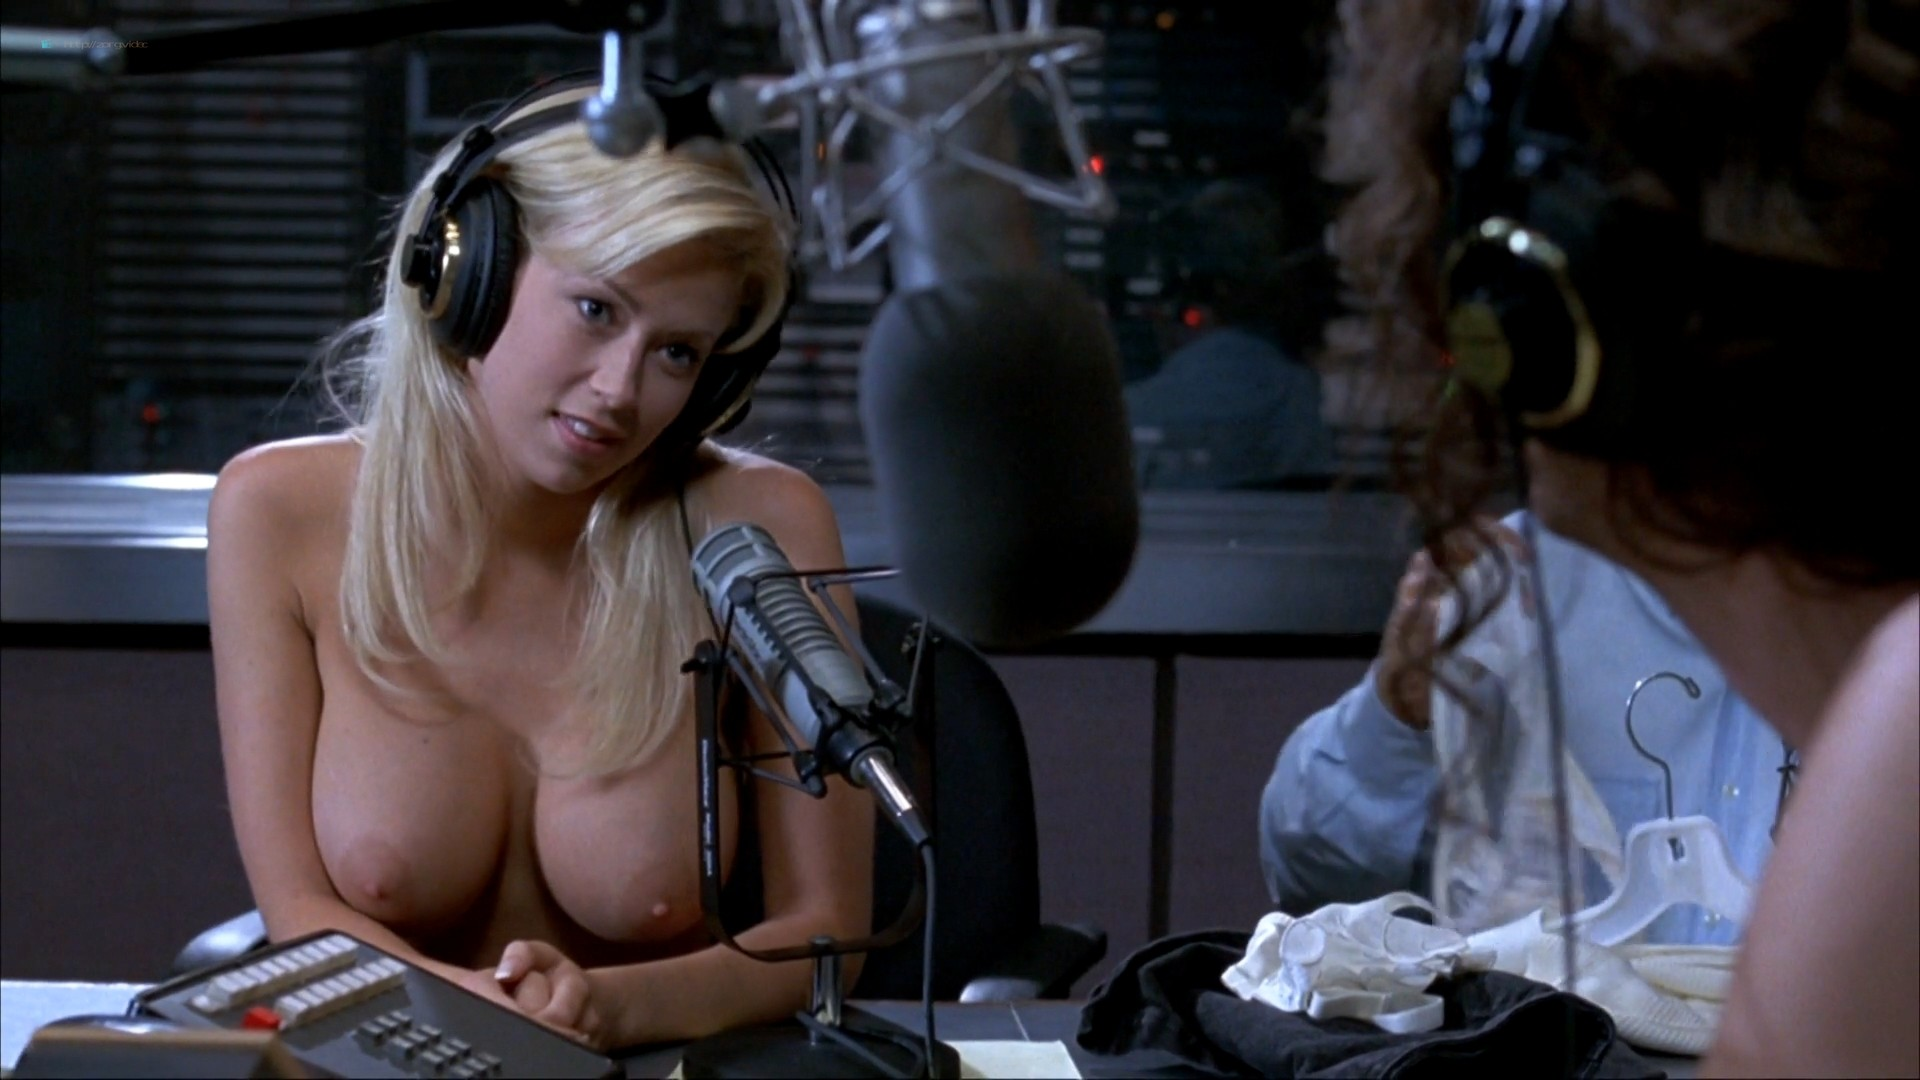 Melanie Good nude Jenna Jameson nude full frontal - Private Parts (1997) 1080p BluRay (19)